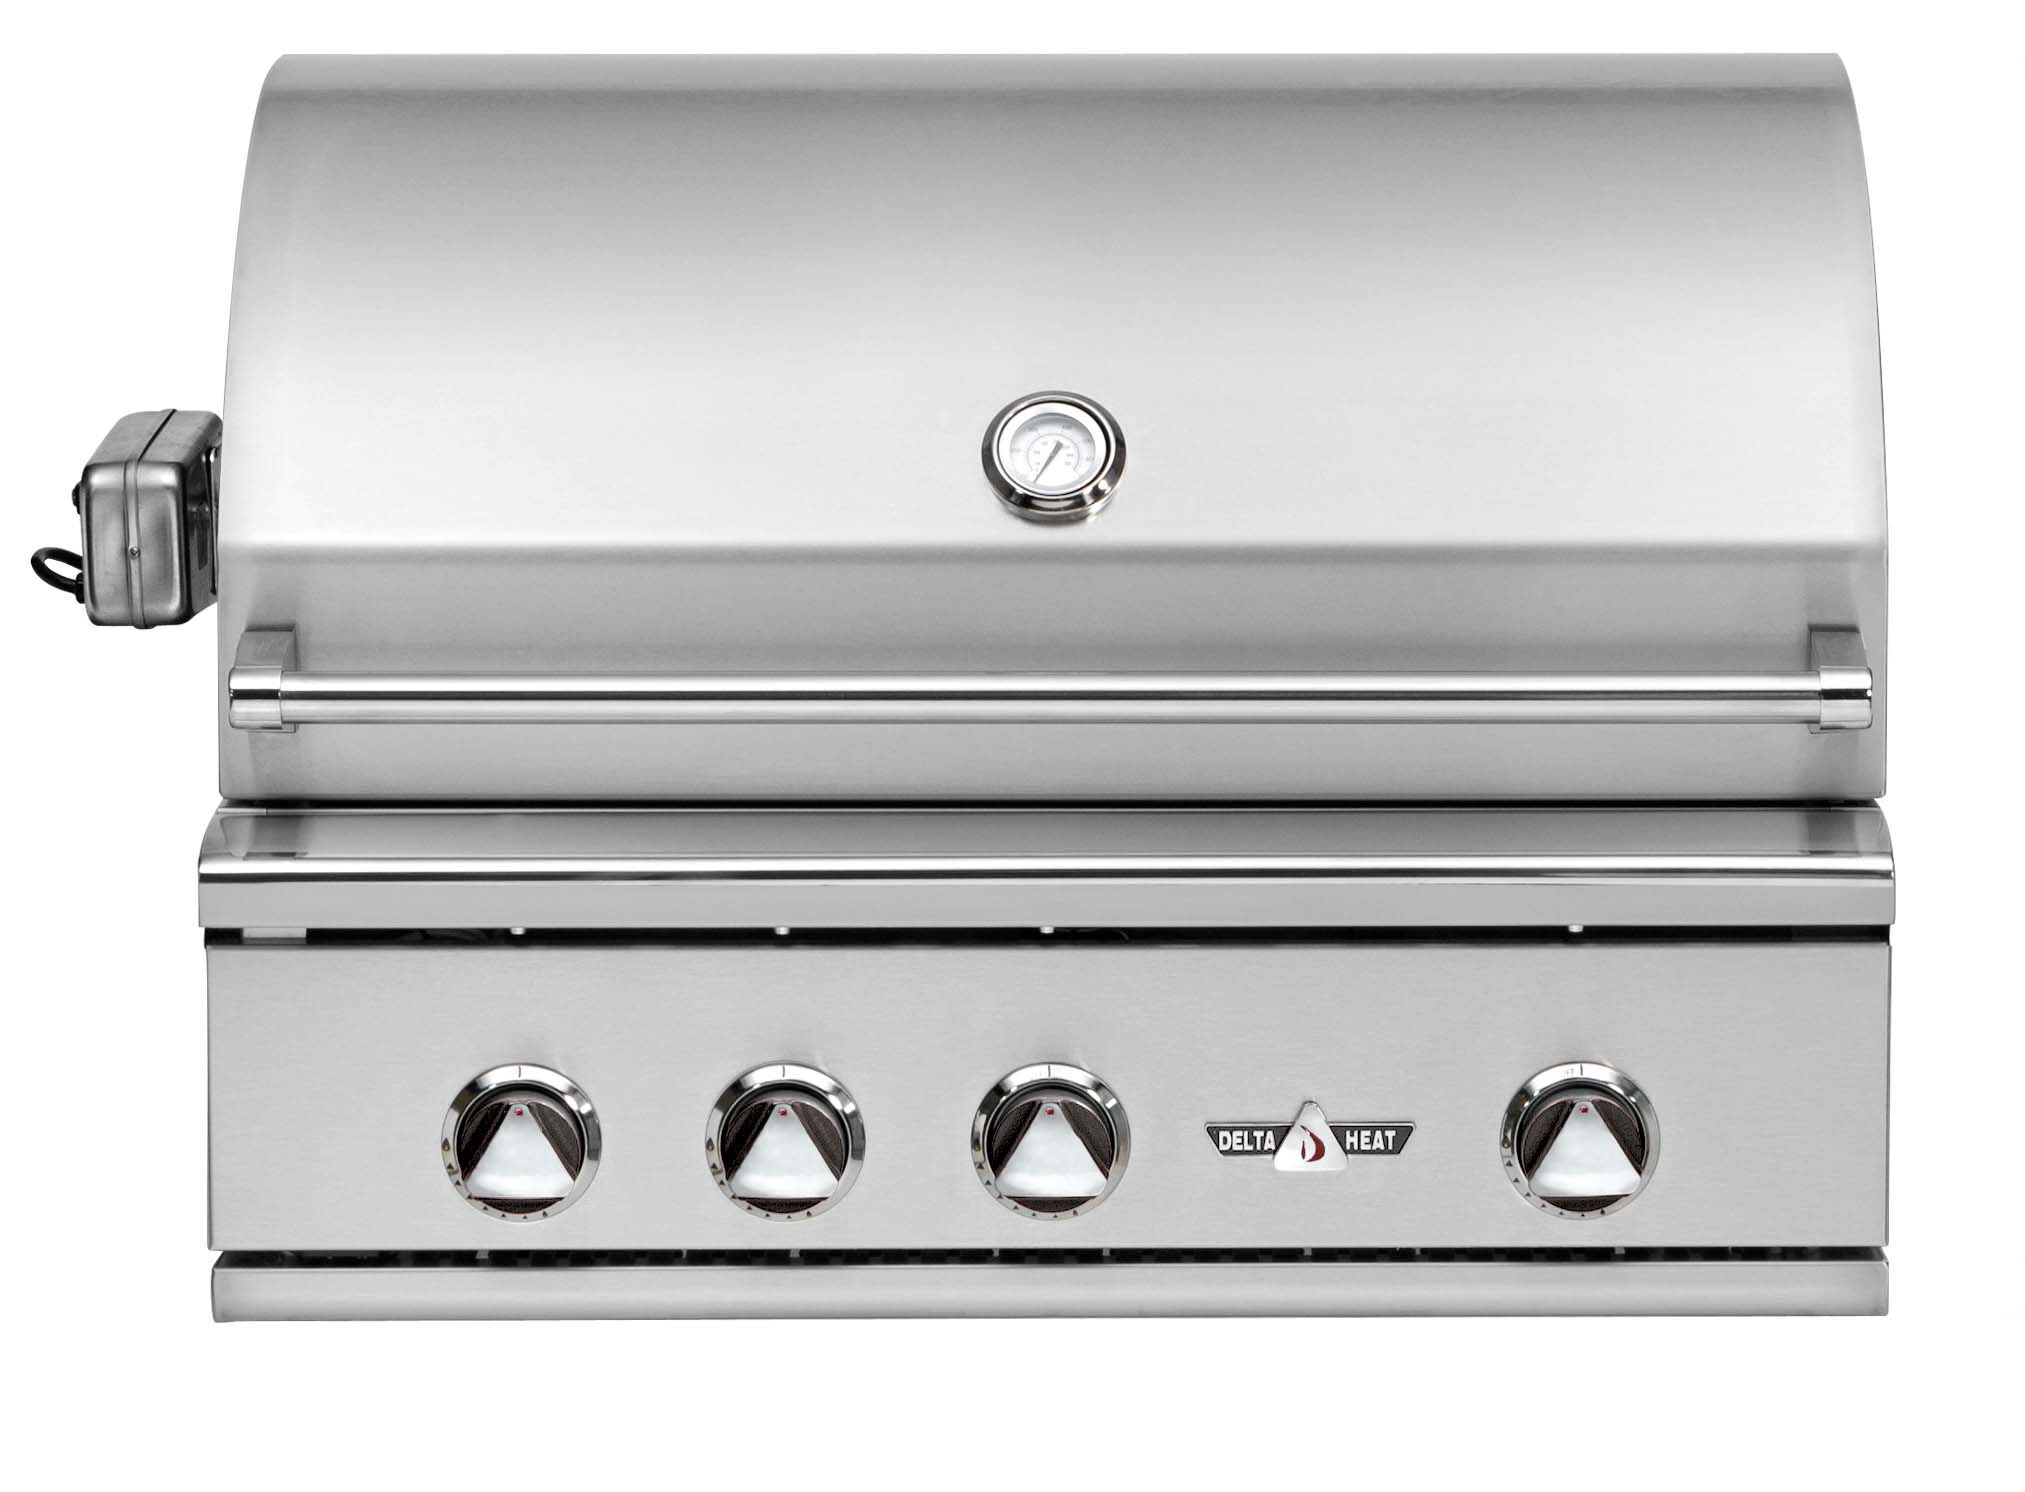 "Delta Heat 32"" Built-in Grill with Rotisserie"